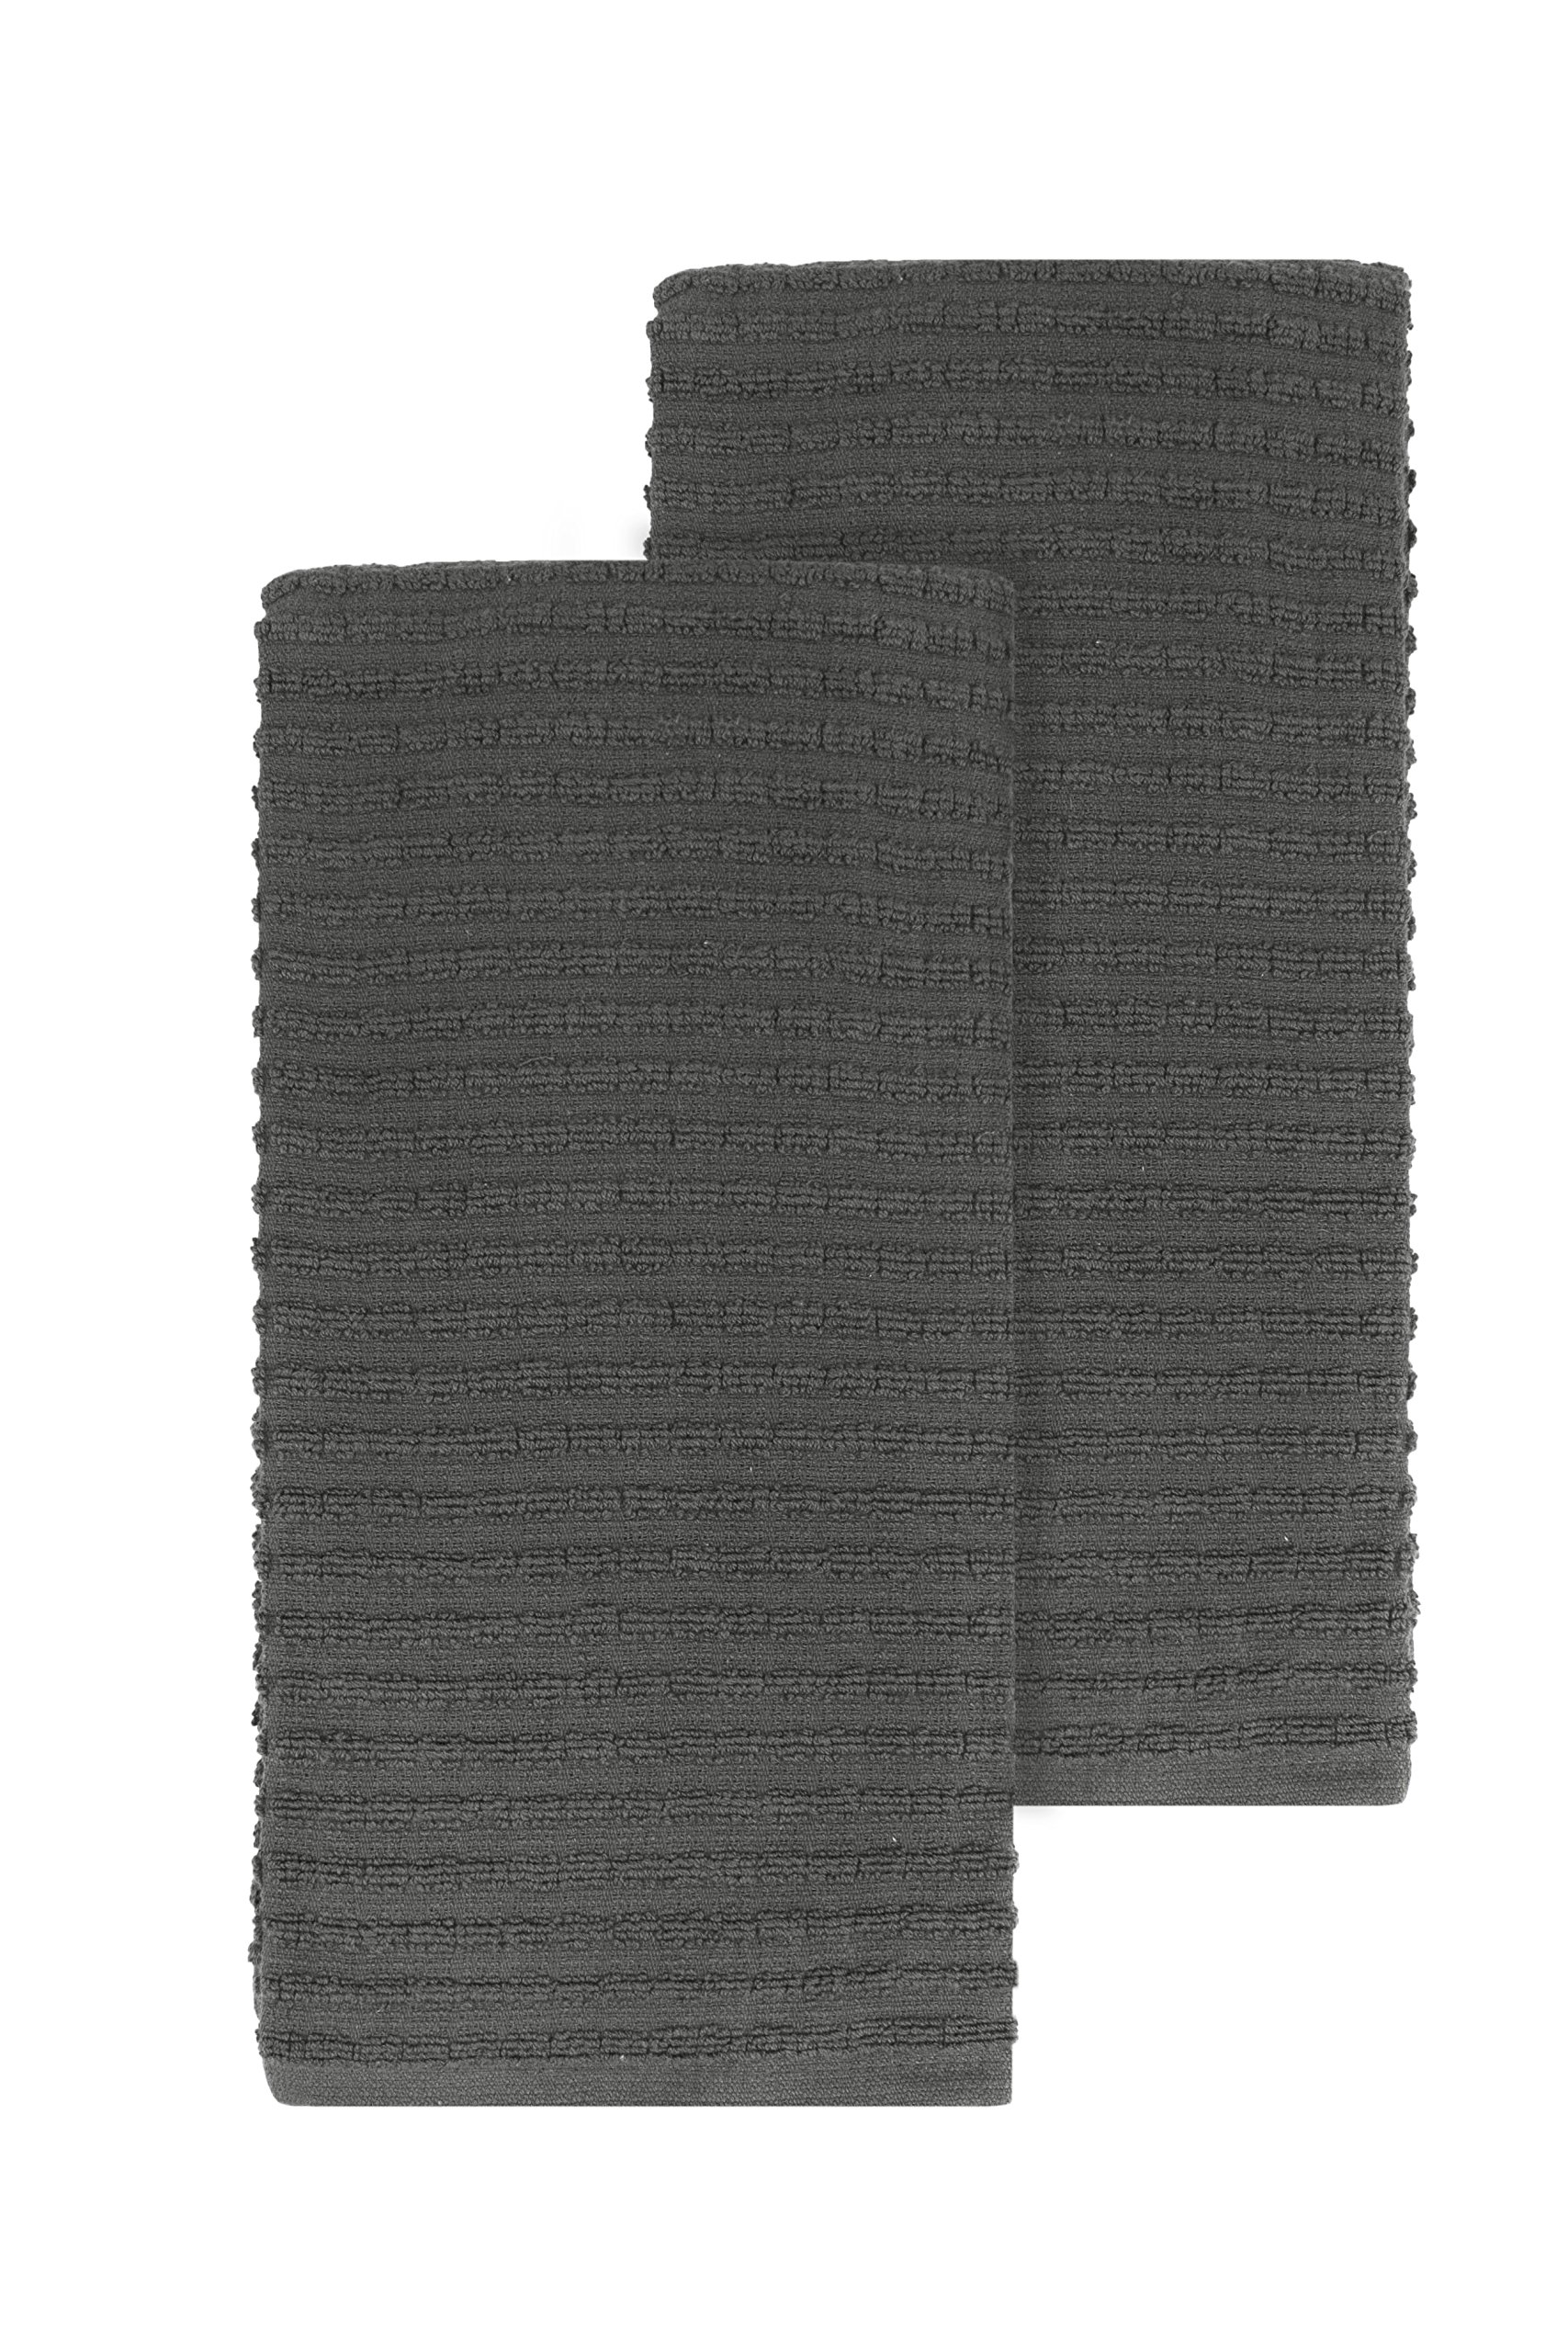 Ritz Royale Collection 100% Combed Terry Cotton, Highly Absorbent, Oversized, Kitchen Towel Set, 28'' x 18'', 2-Pack, Solid Graphite